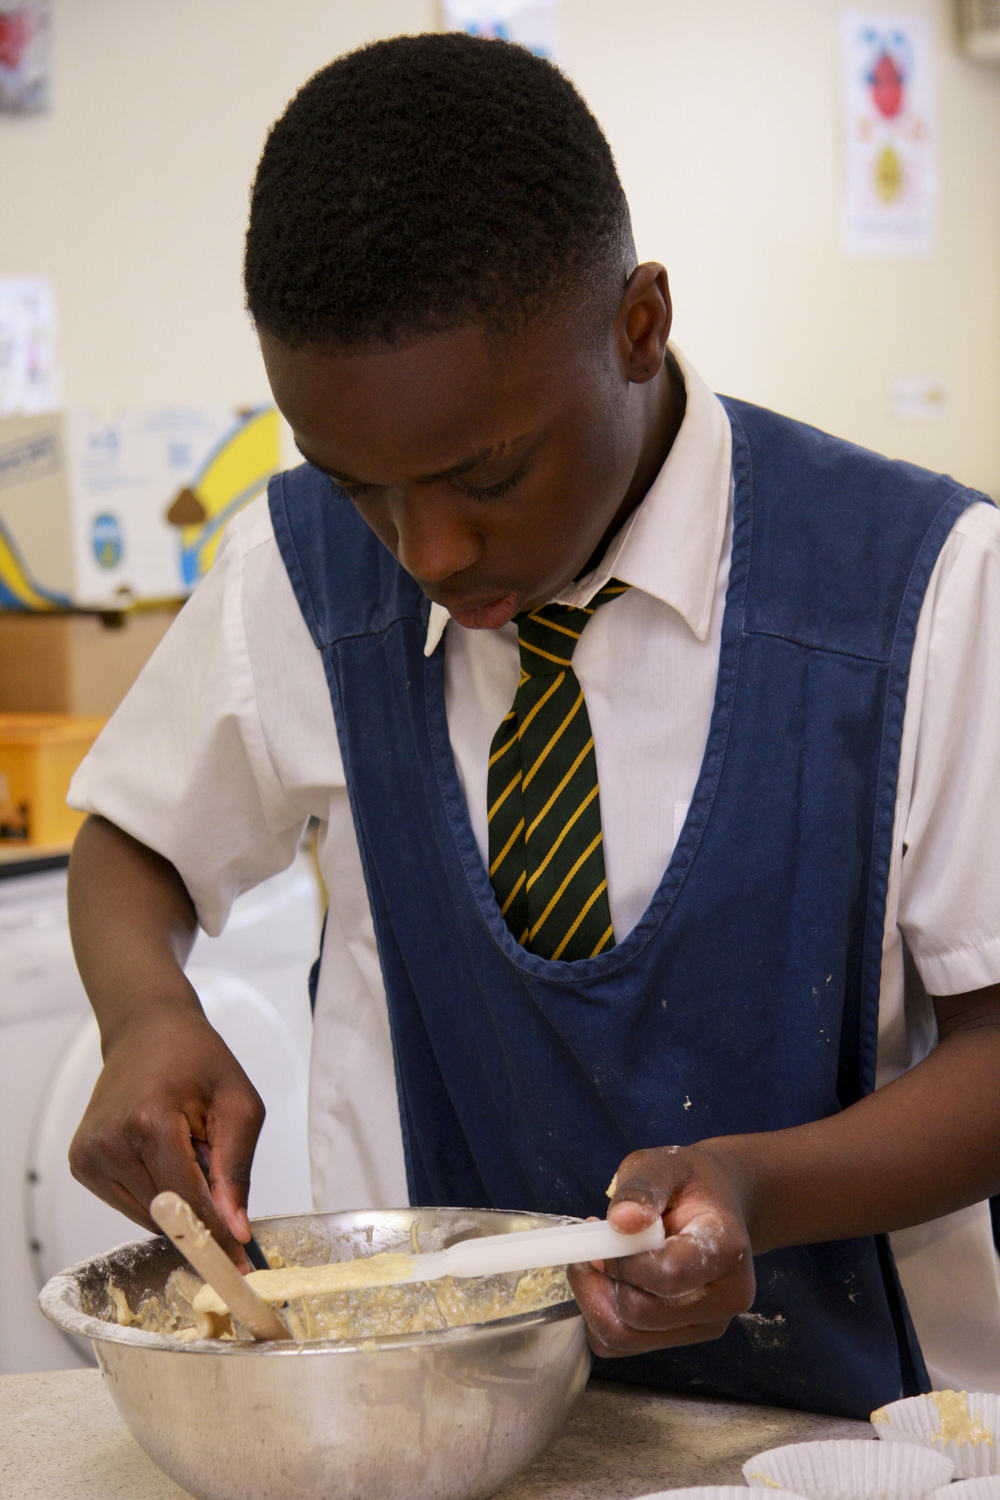 Middle & Secondary Cooking Club - Monday & Wednesday, 3.15-4.15pm